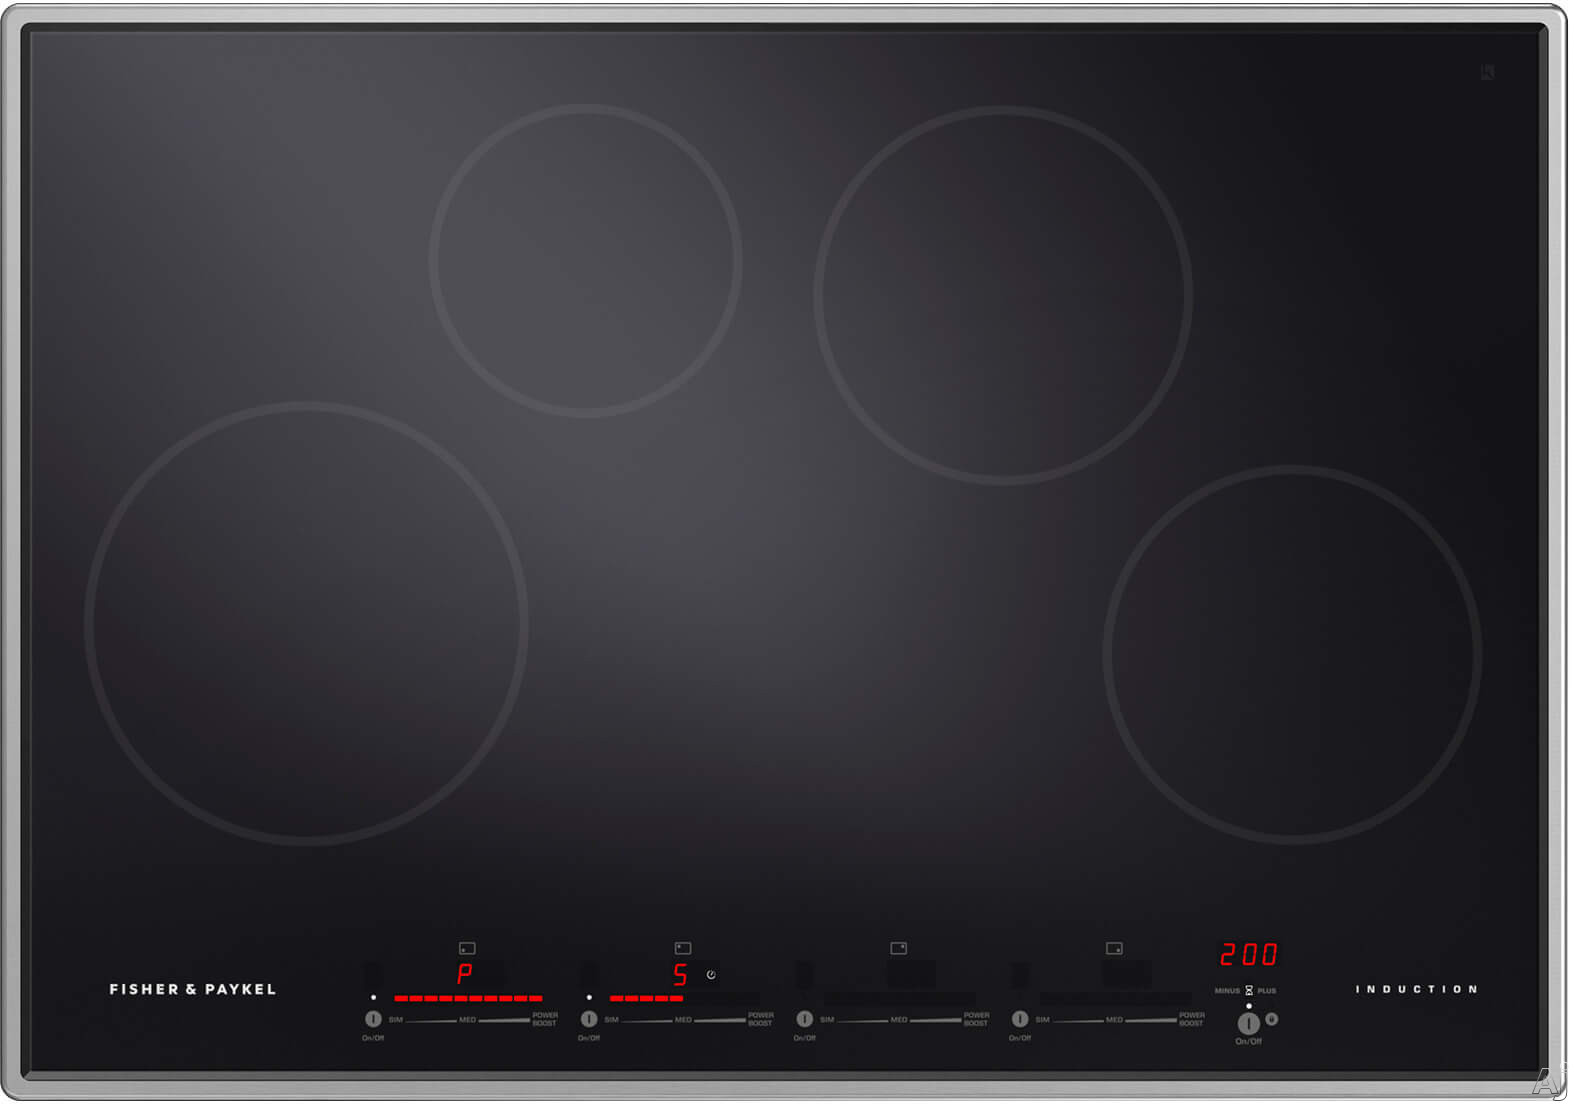 Fisher & Paykel CI304PTX1N 30 Inch Induction Cooktop with 5 Cooking Zones, Touch & Slide Controls, PowerBoost & GentleHeat and Easy Clean